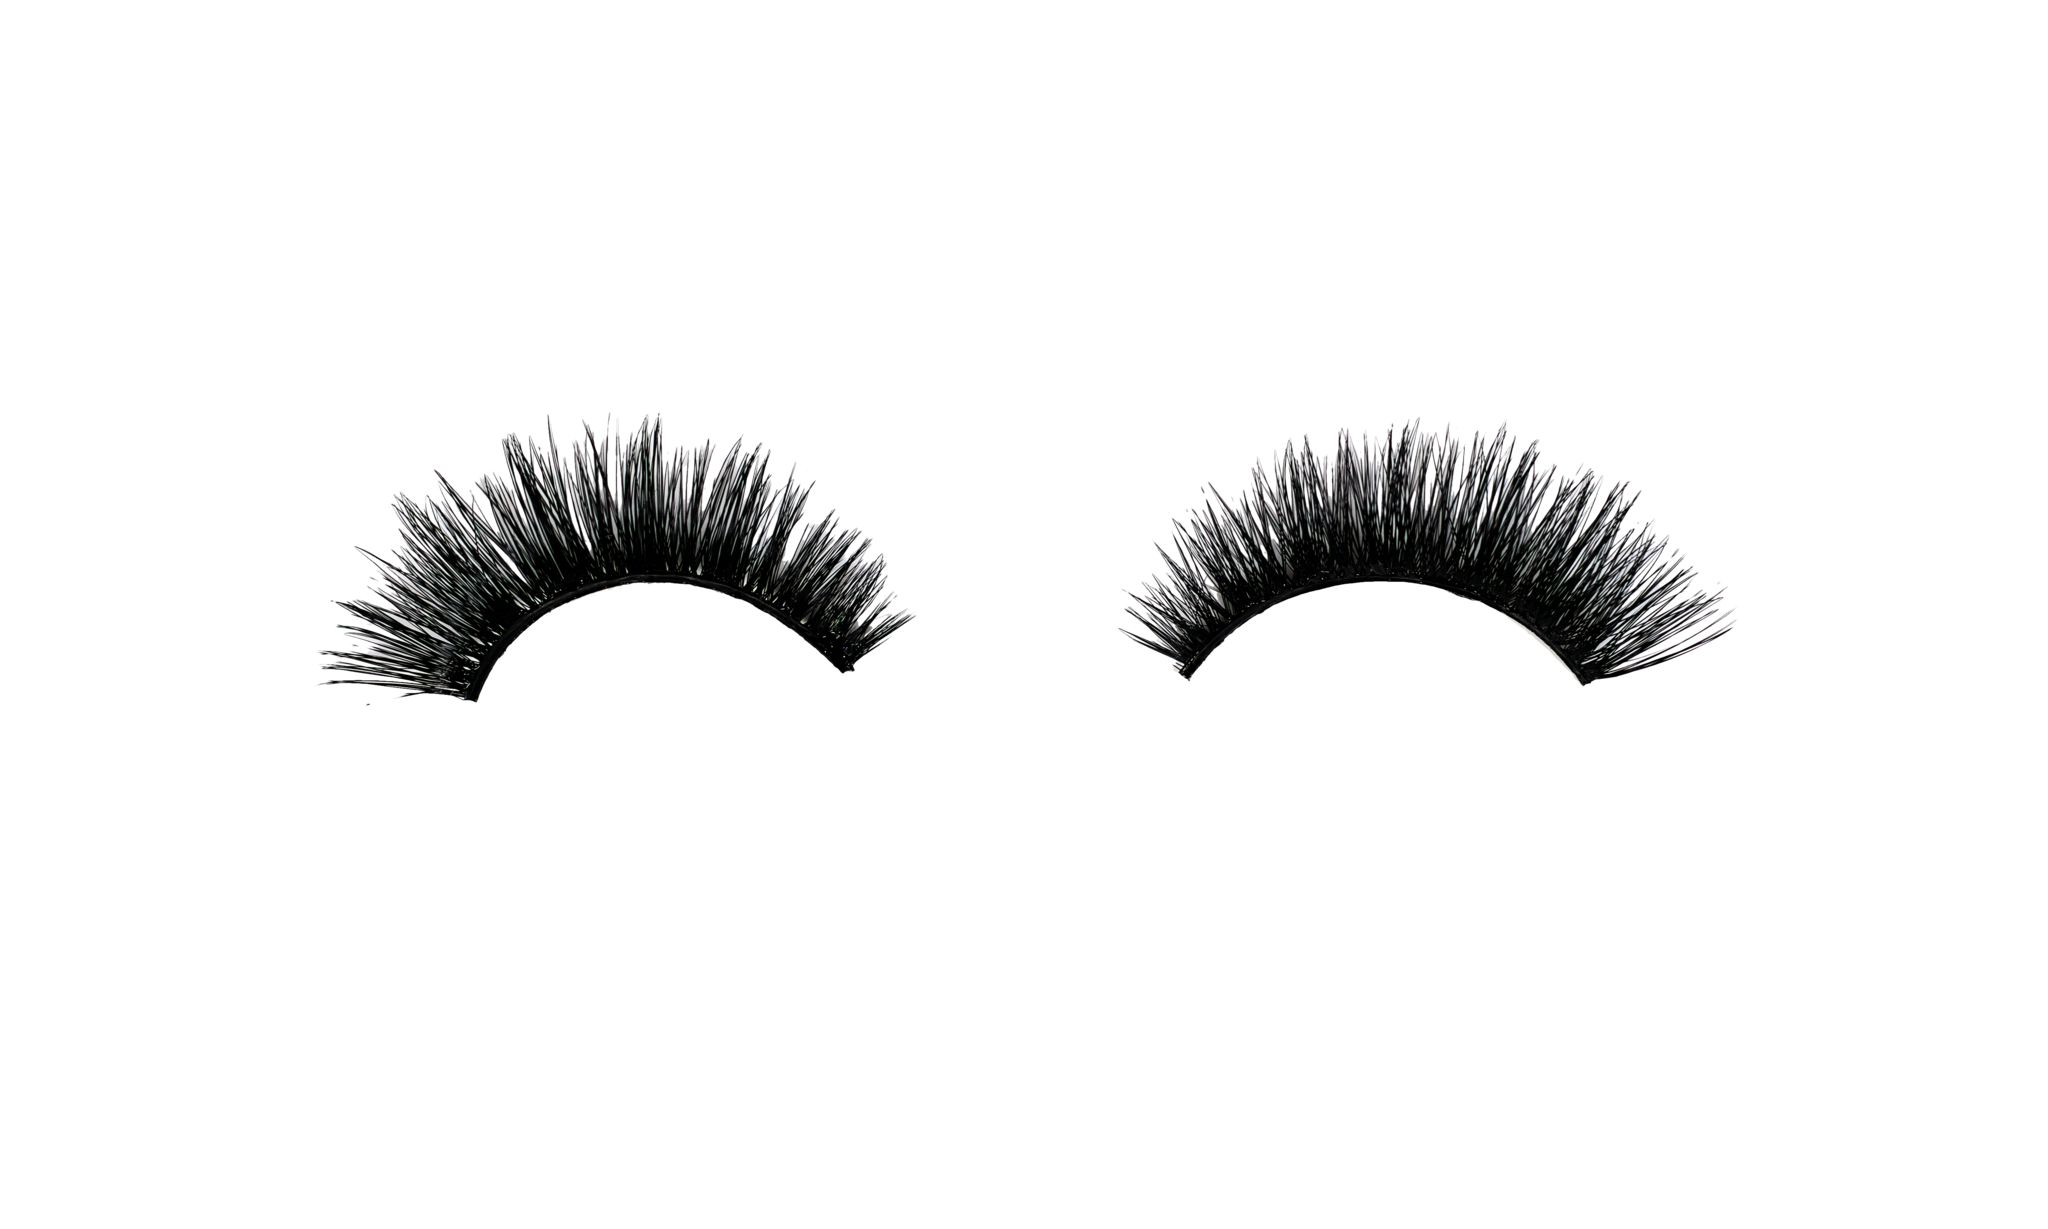 Eyelashes photoshop png. Lashes mazken dragon lash